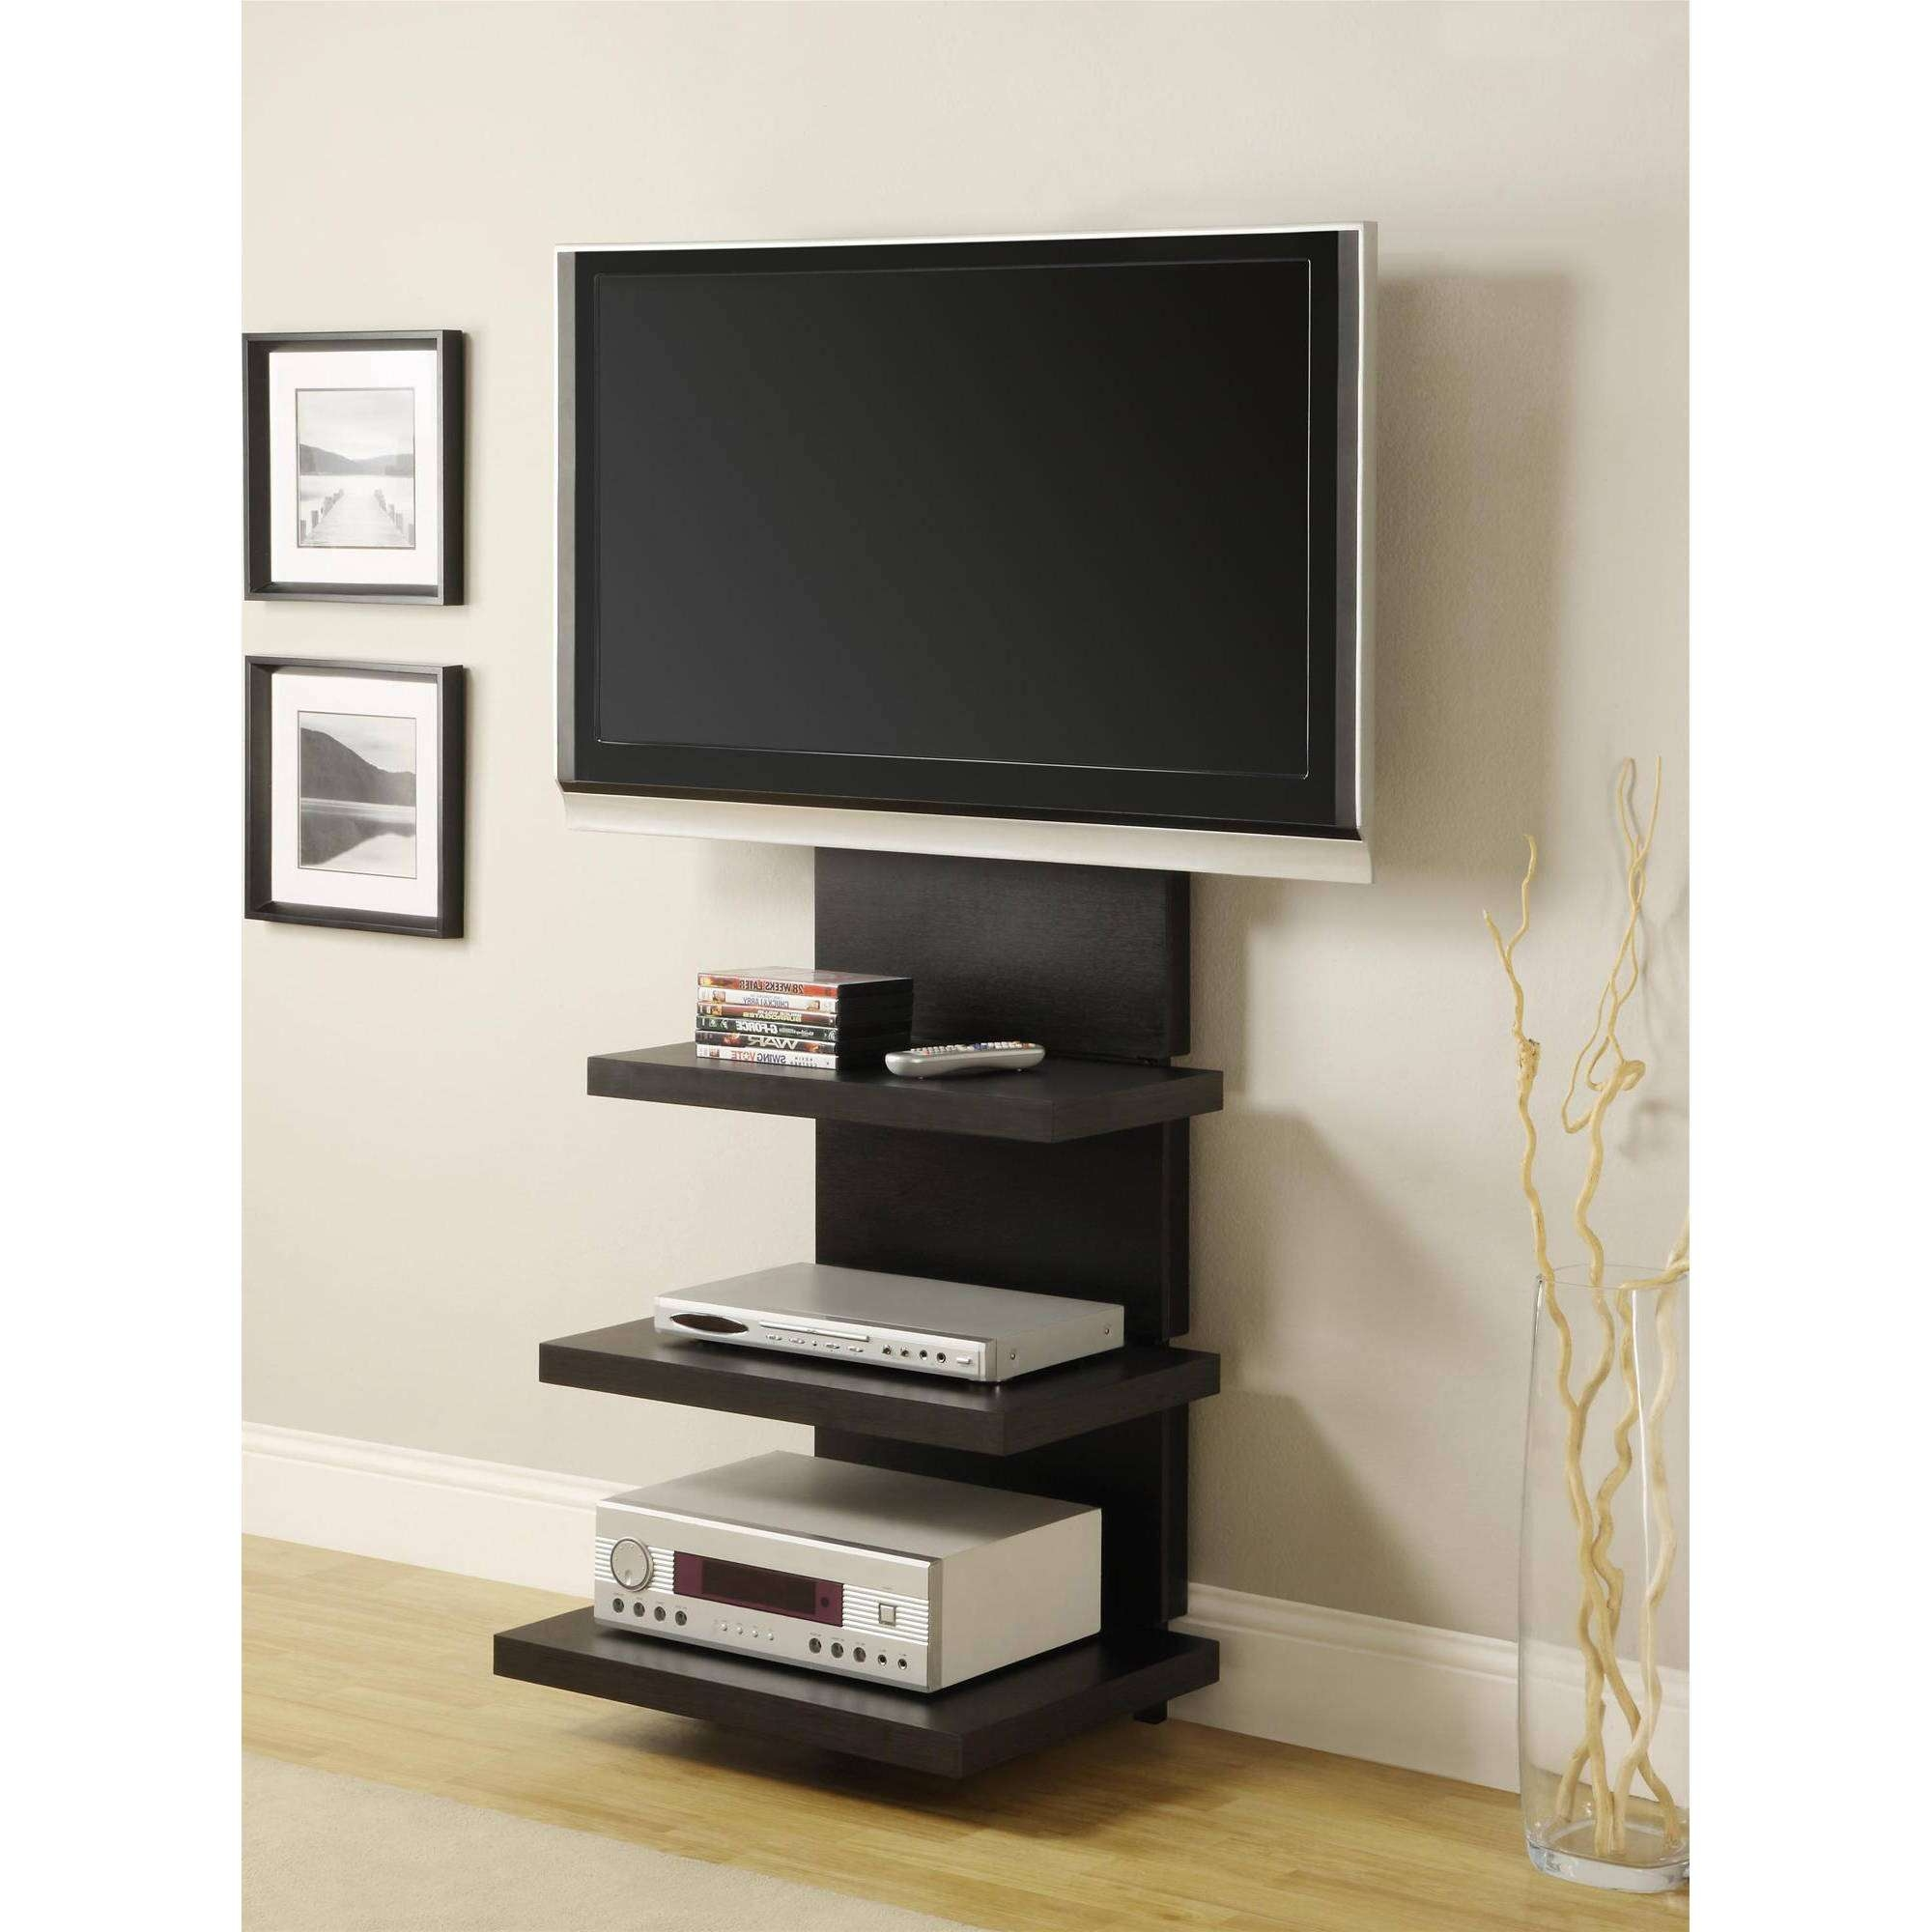 "Series 9 Designer Collection 58"" Wall Mounted Av Console – Walmart Inside Tv Stands Tall Narrow (View 6 of 15)"